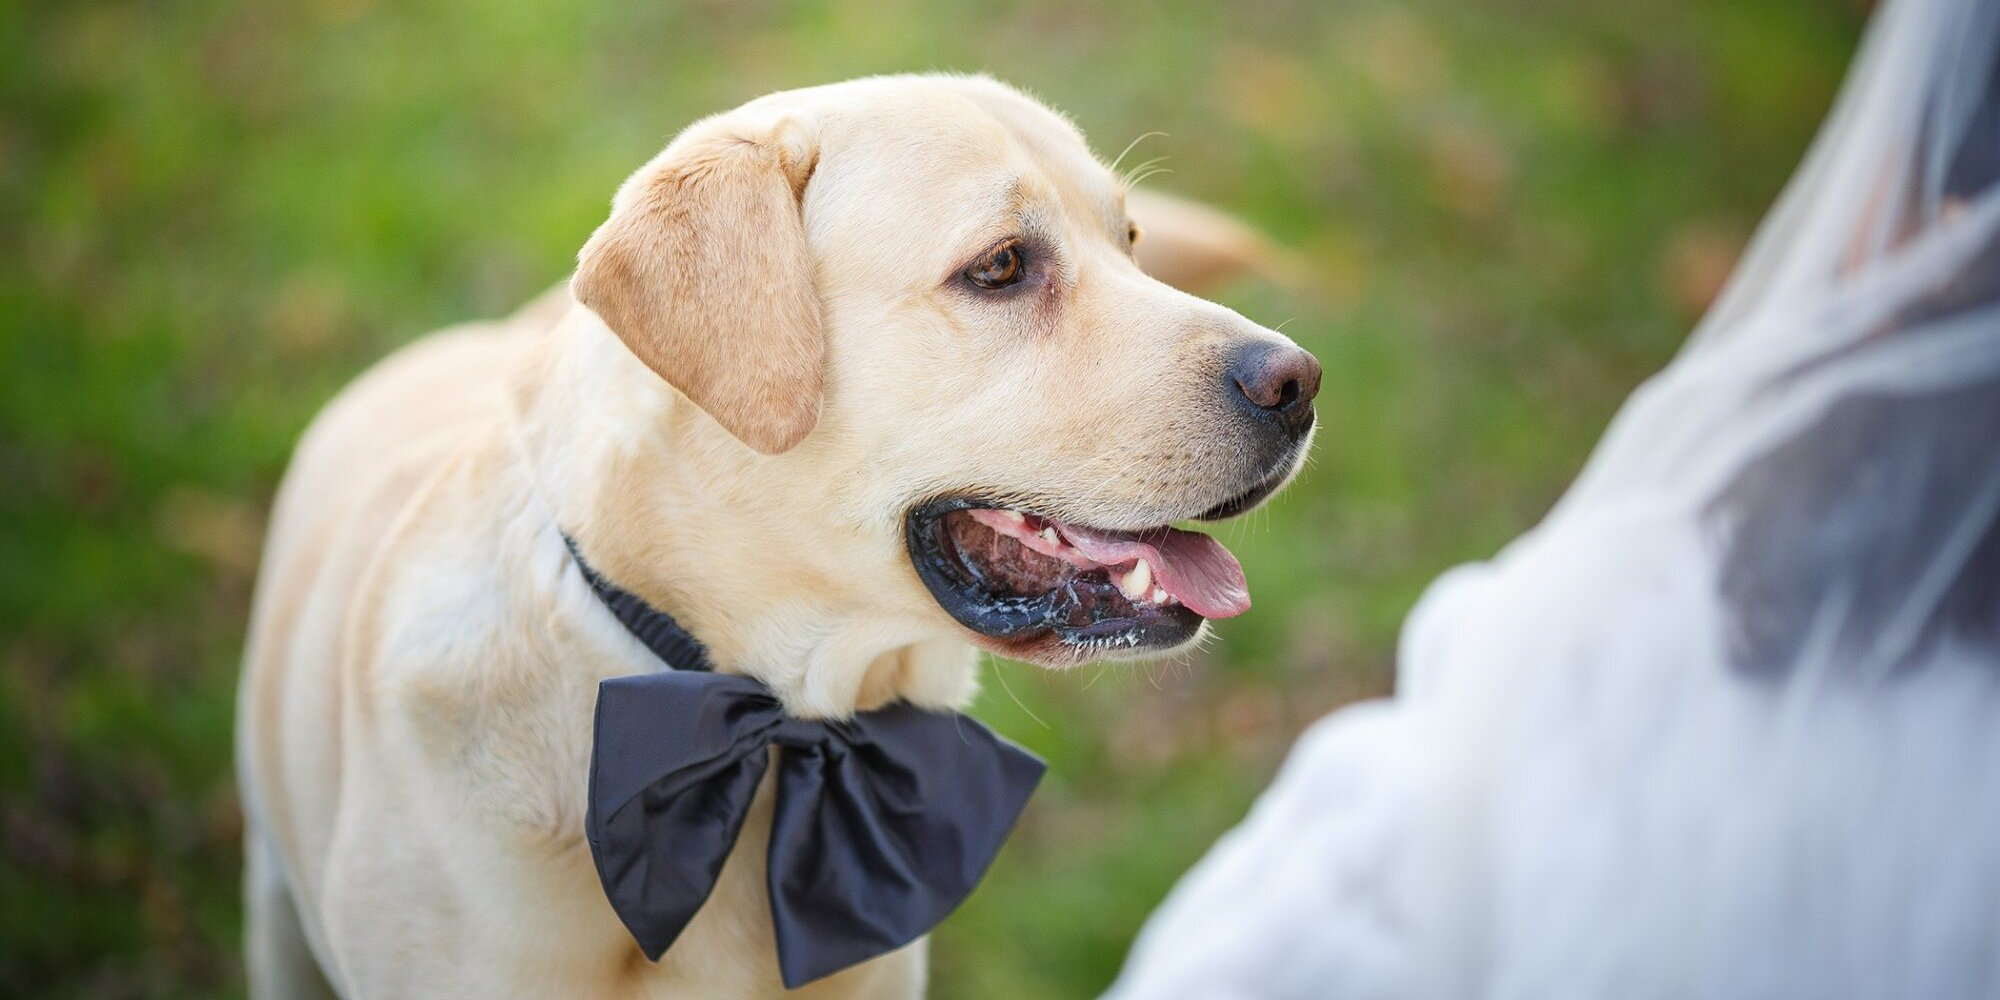 One-Third of Pet Owners Include Their Furry Friend in Their Wedding or Engagement, Survey Finds